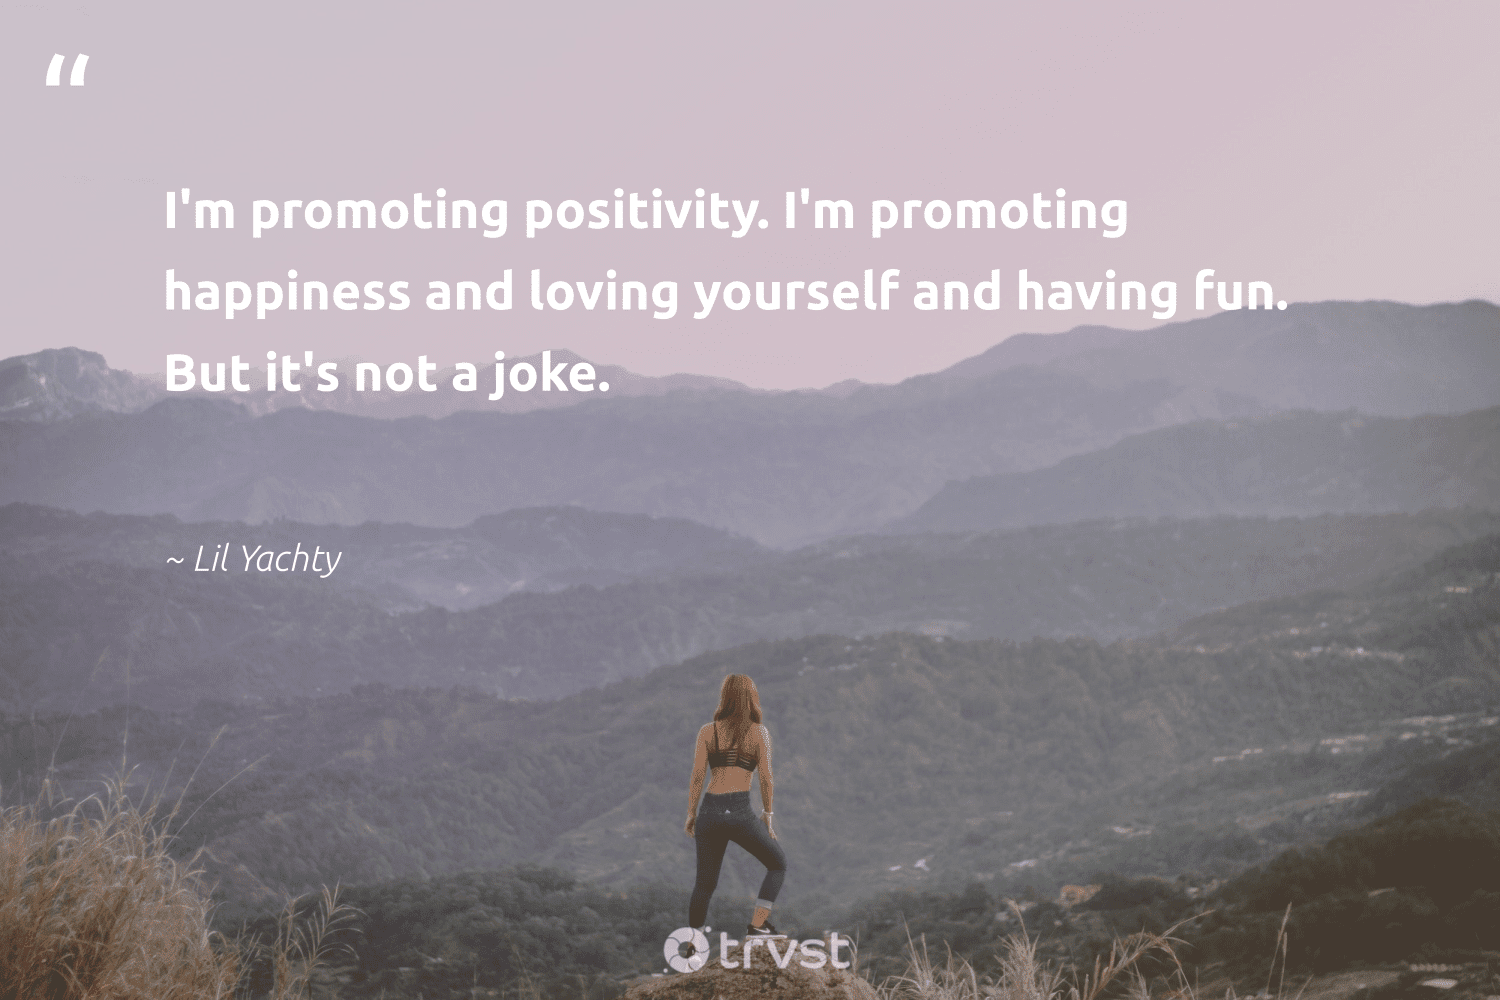 """""""I'm promoting positivity. I'm promoting happiness and loving yourself and having fun. But it's not a joke.""""  - Lil Yachty #trvst #quotes #mindset #happiness #positivity #motivation #begreat #nevergiveup #dosomething #growthmindset #health #bethechange"""